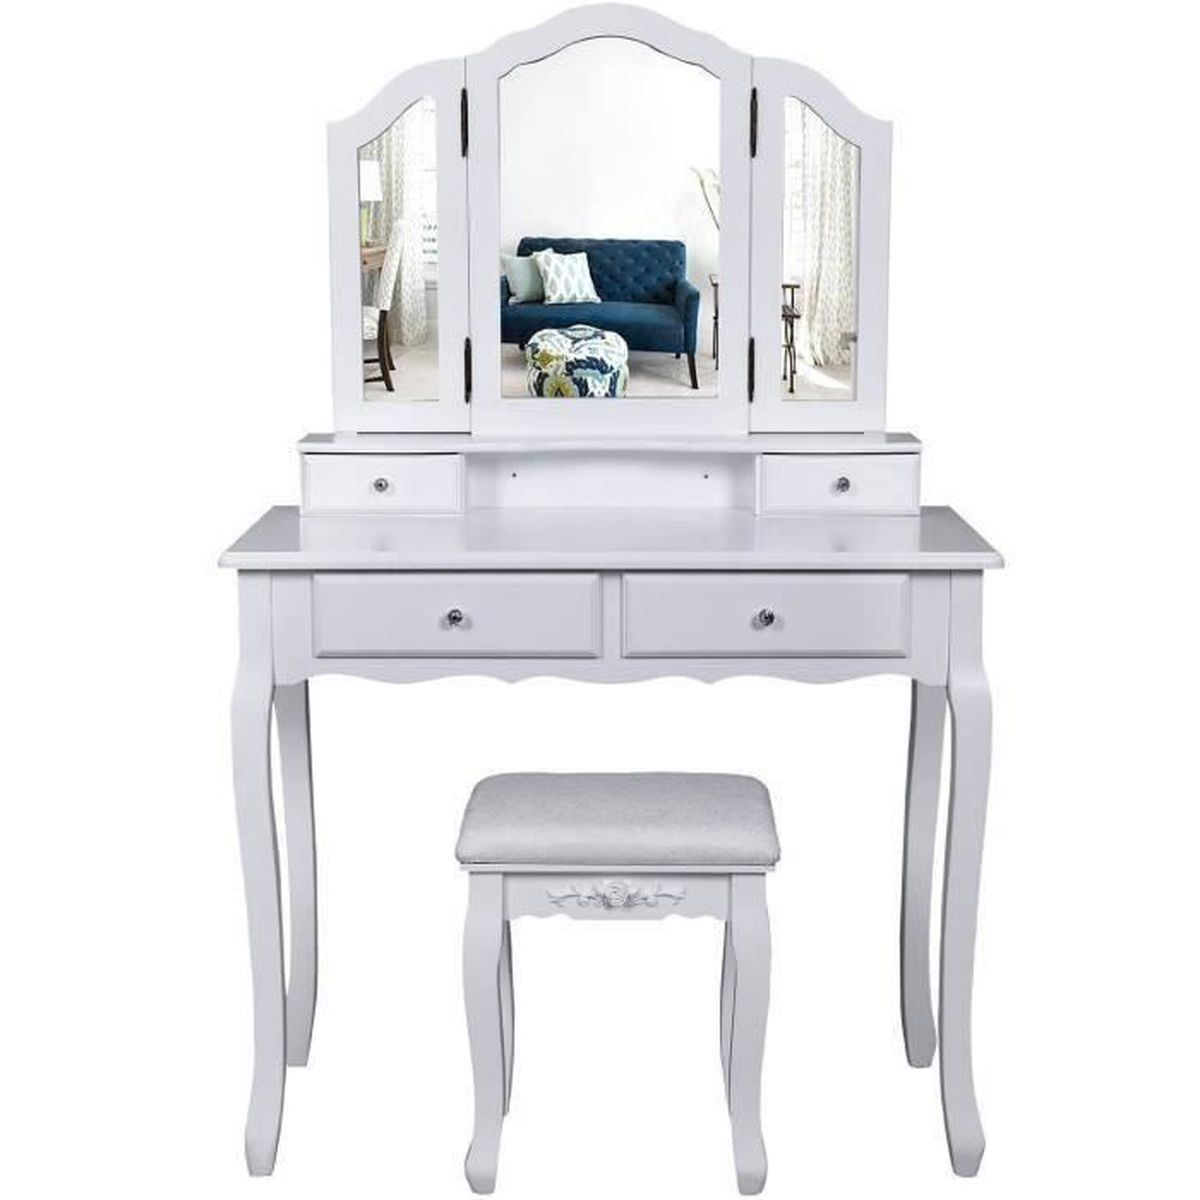 grande coiffeuse table de maquillage avec 3 miroir 4 tiroirs s parations pour tiroirs et. Black Bedroom Furniture Sets. Home Design Ideas